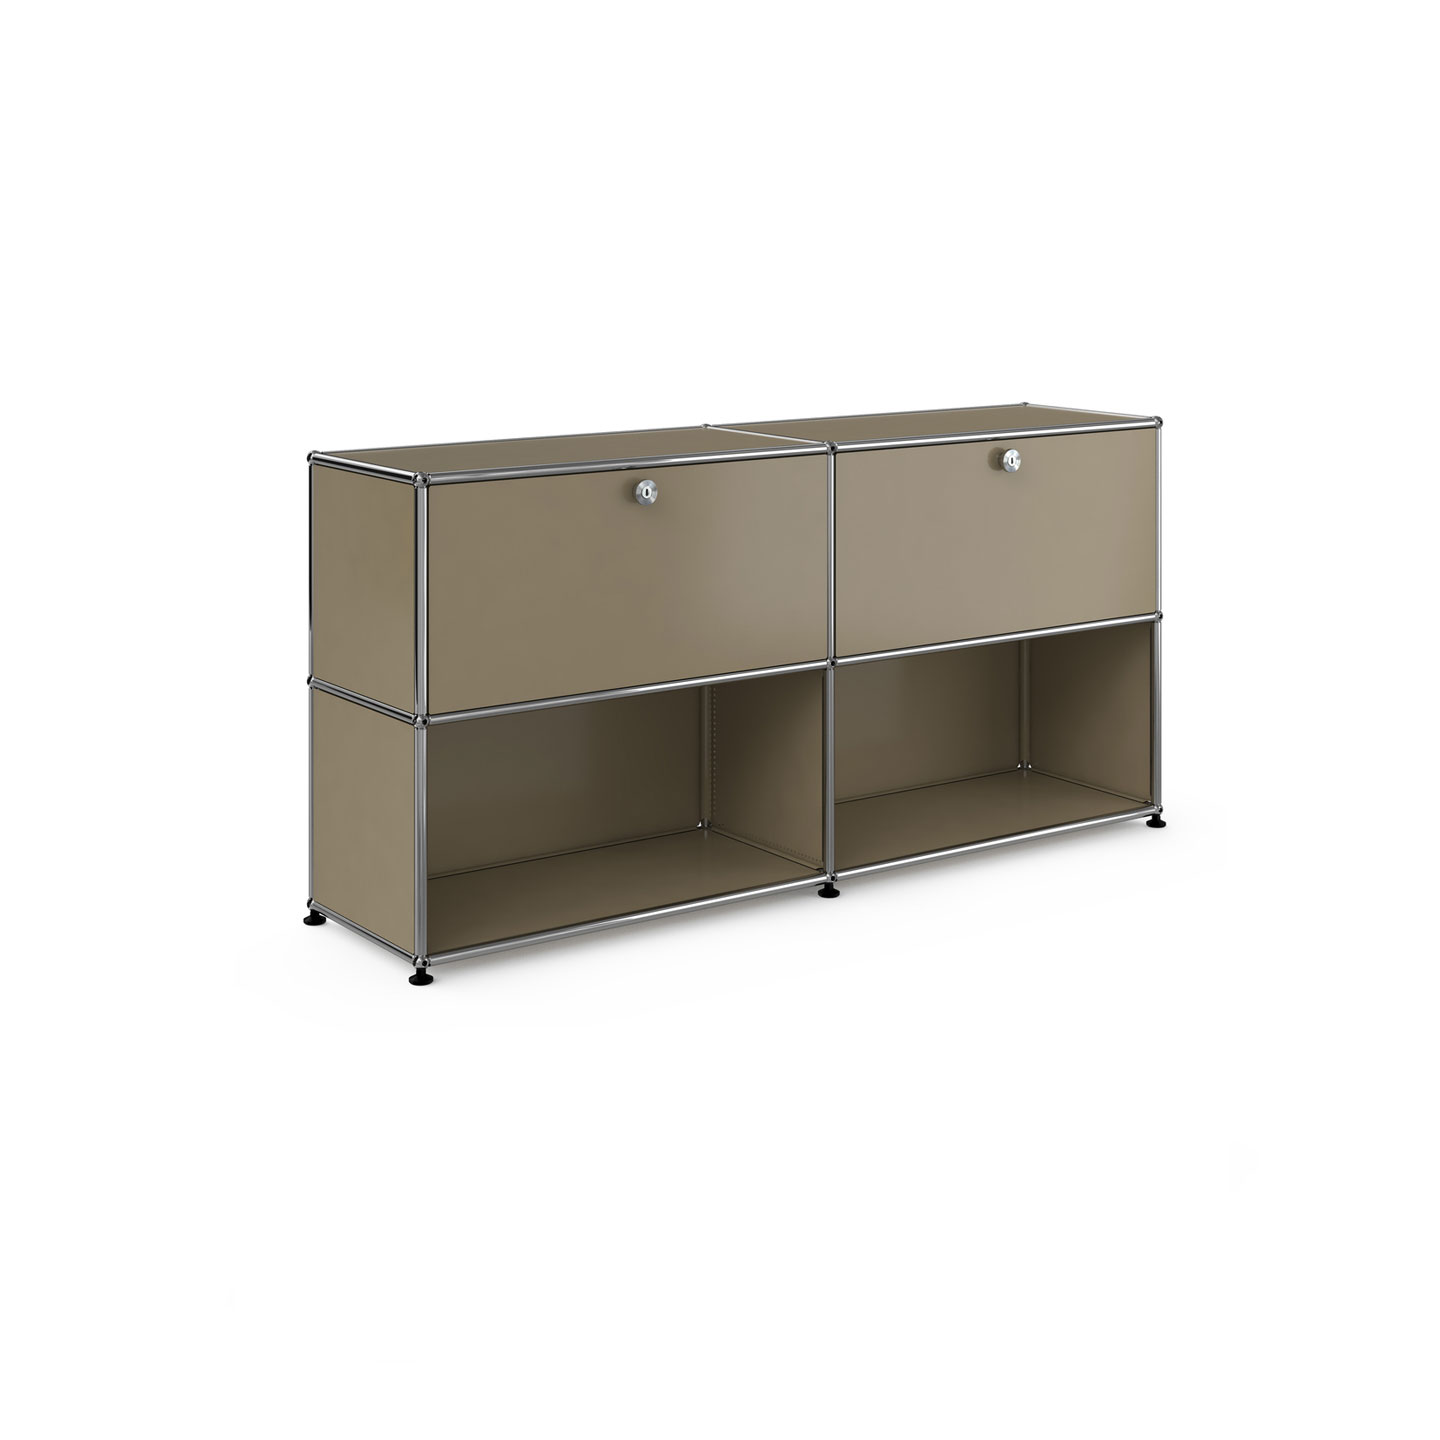 USM Sideboard Upper Doors